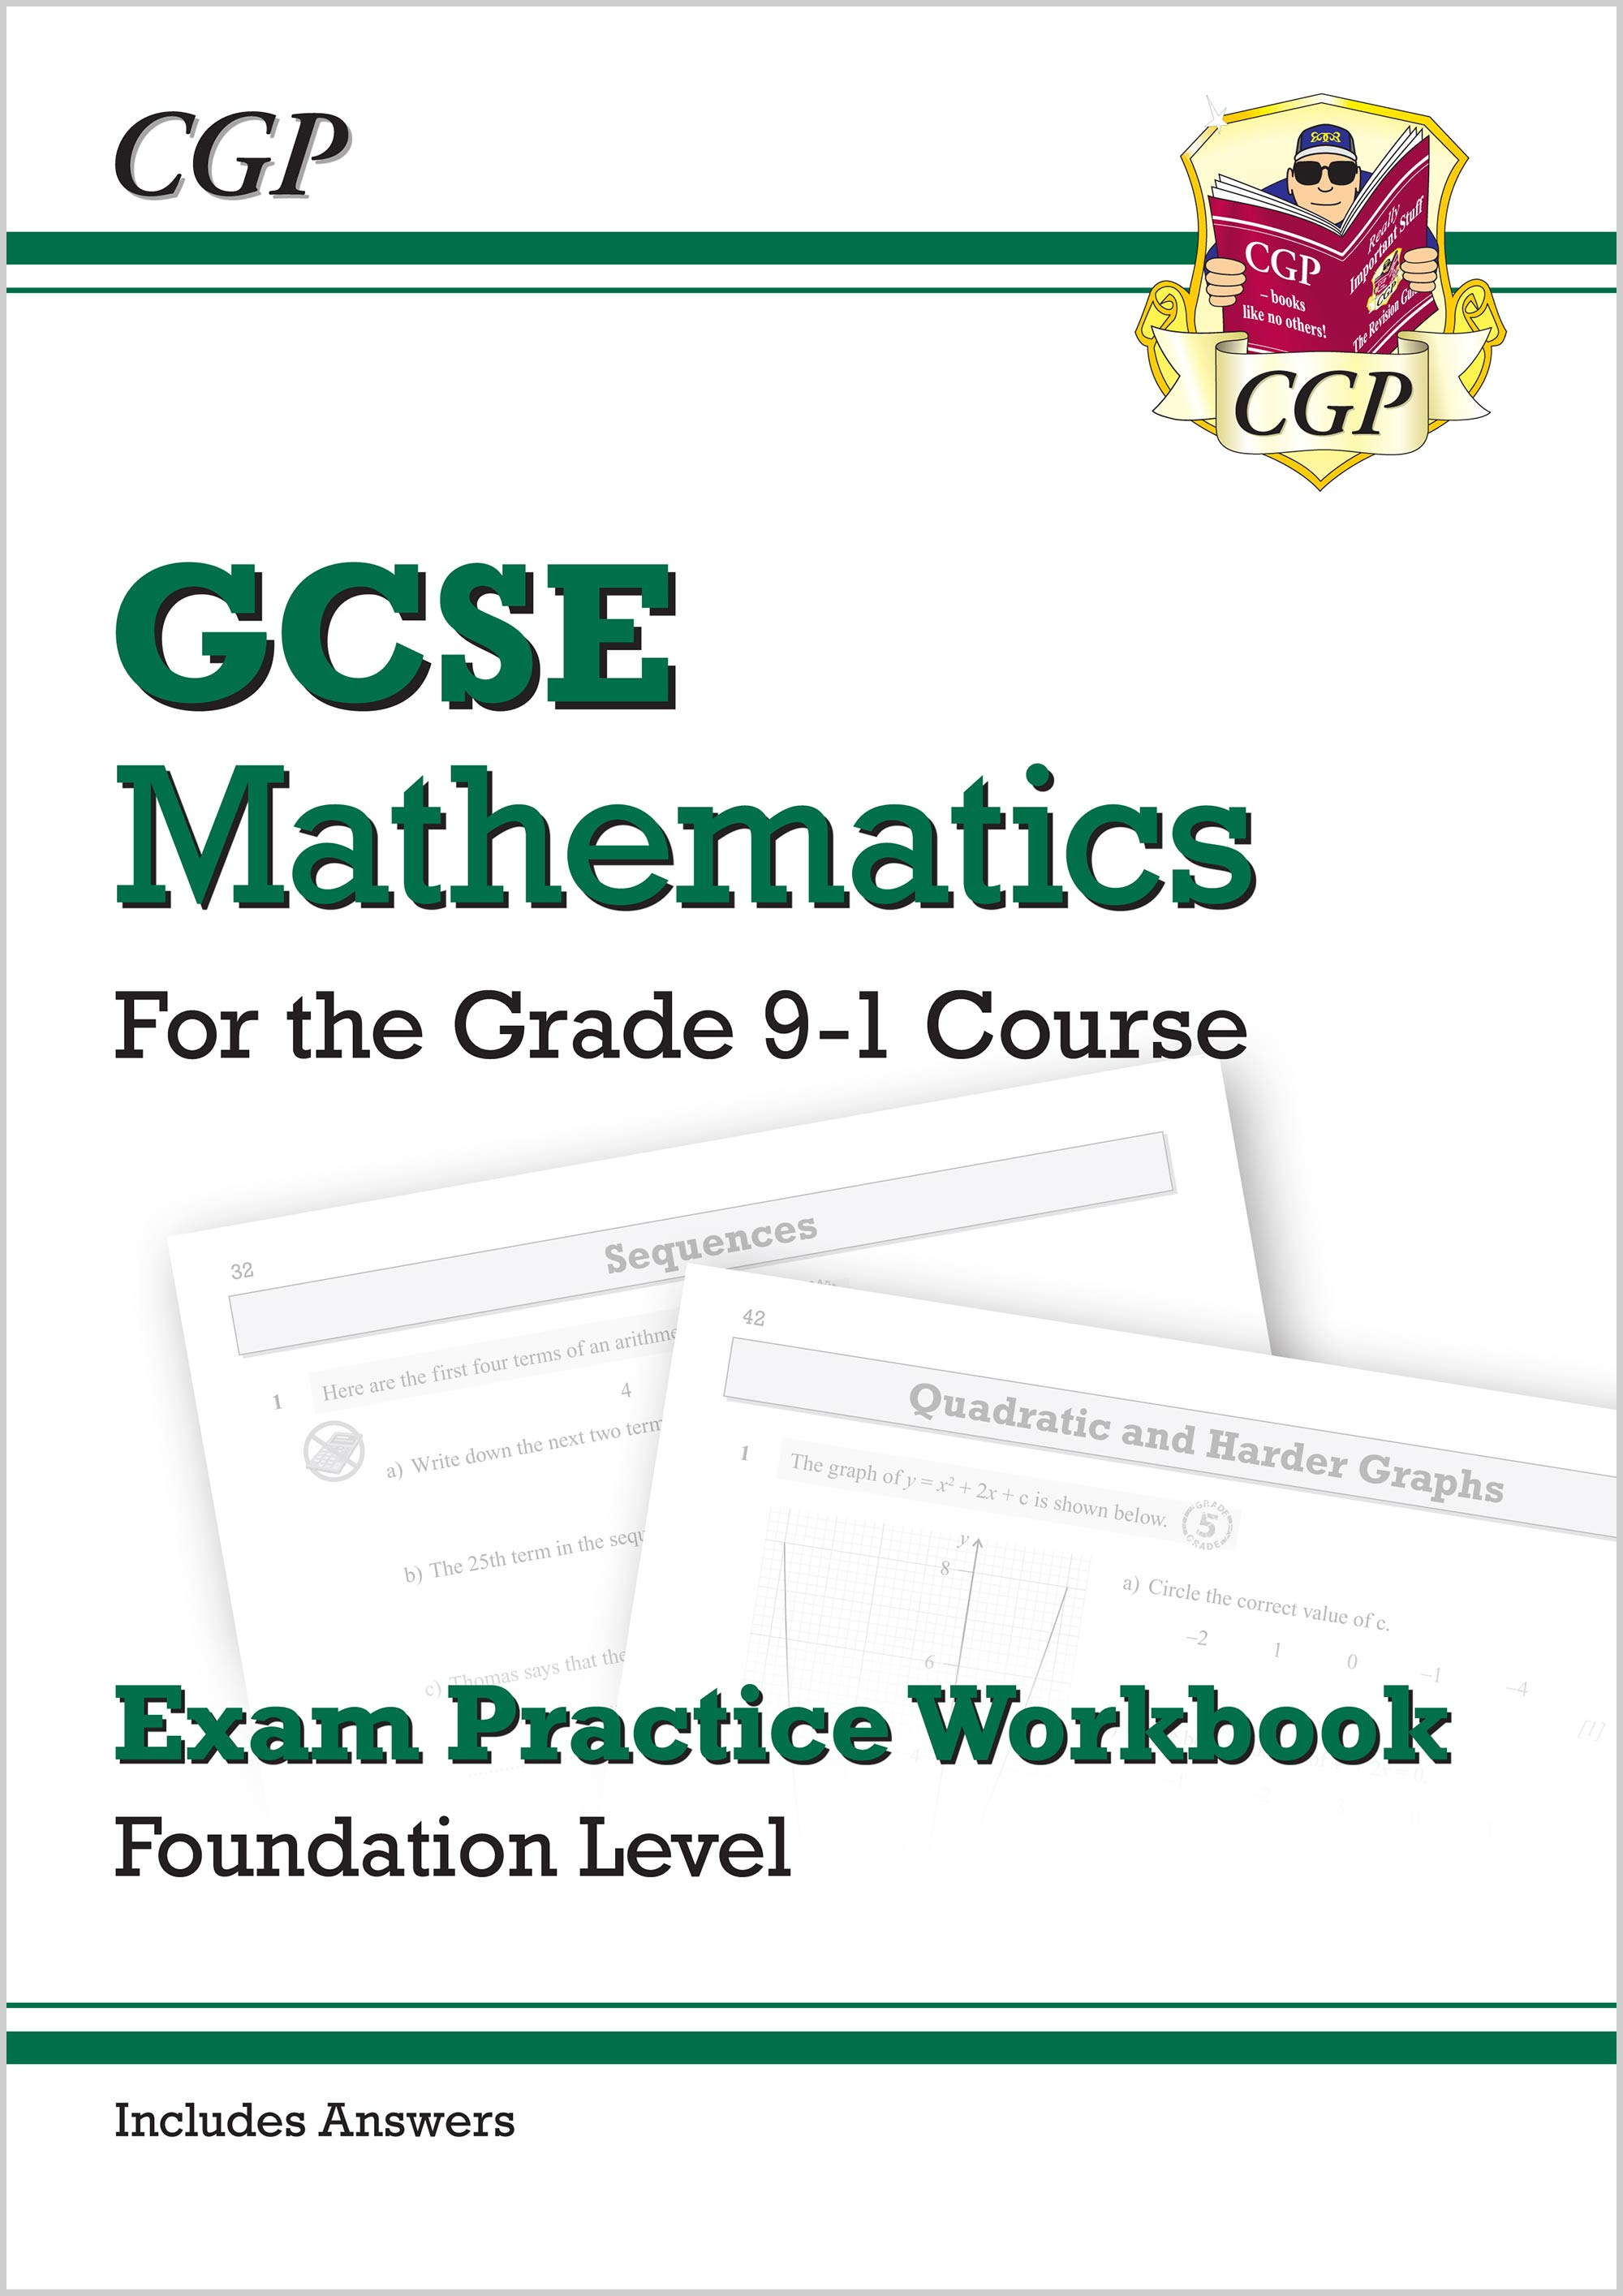 MFQ46 - GCSE Maths Exam Practice Workbook: Foundation - for the Grade 9-1 Course (includes Answers)